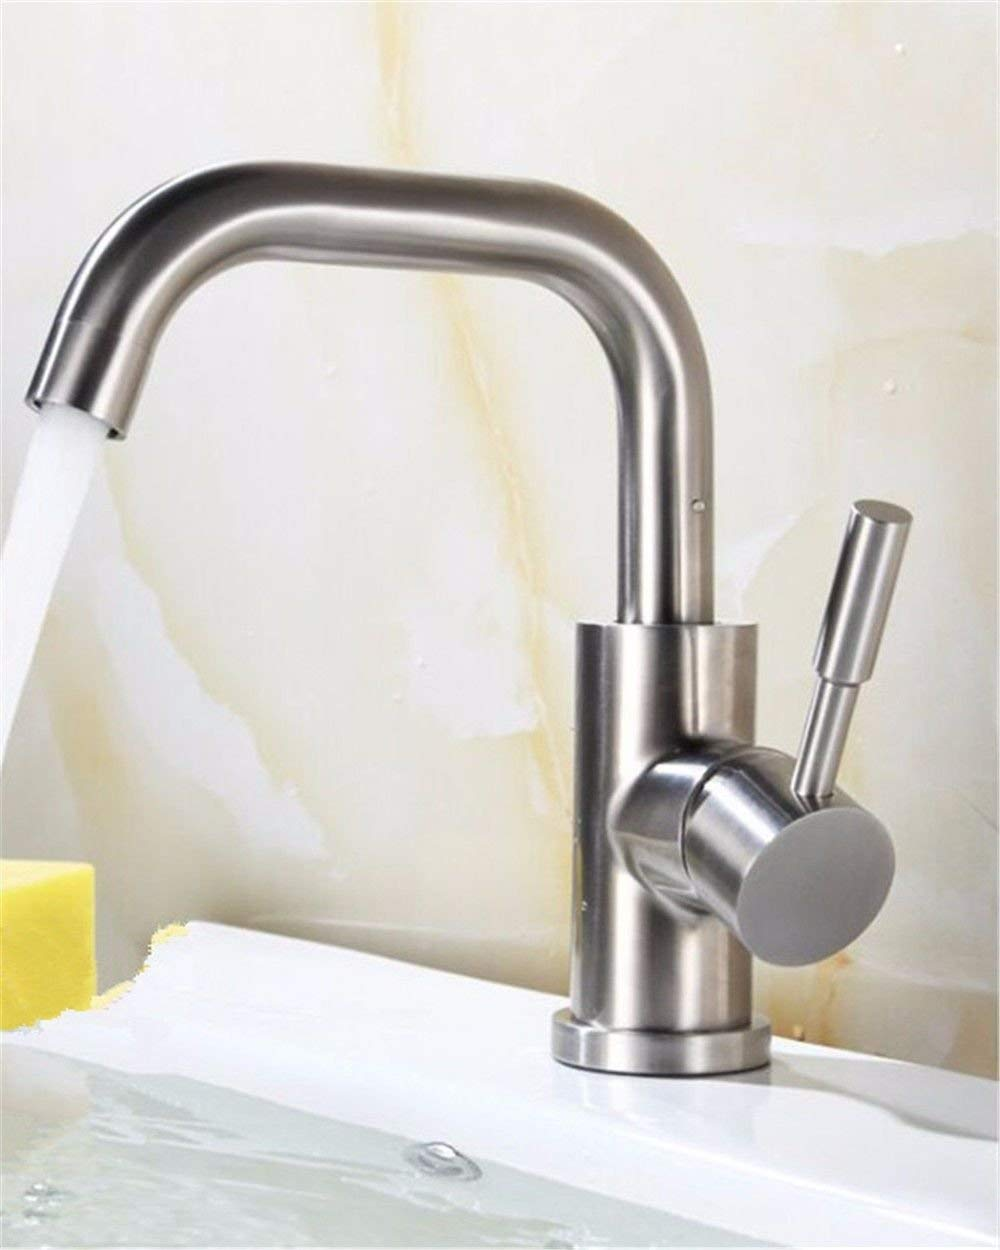 3304 Oudan Basin Mixer Tap Bathroom Sink Faucet Stainless Steel Washbasin Faucet hot and cold toilet single hole basin bench Vanity basin,3342 (color   3307)